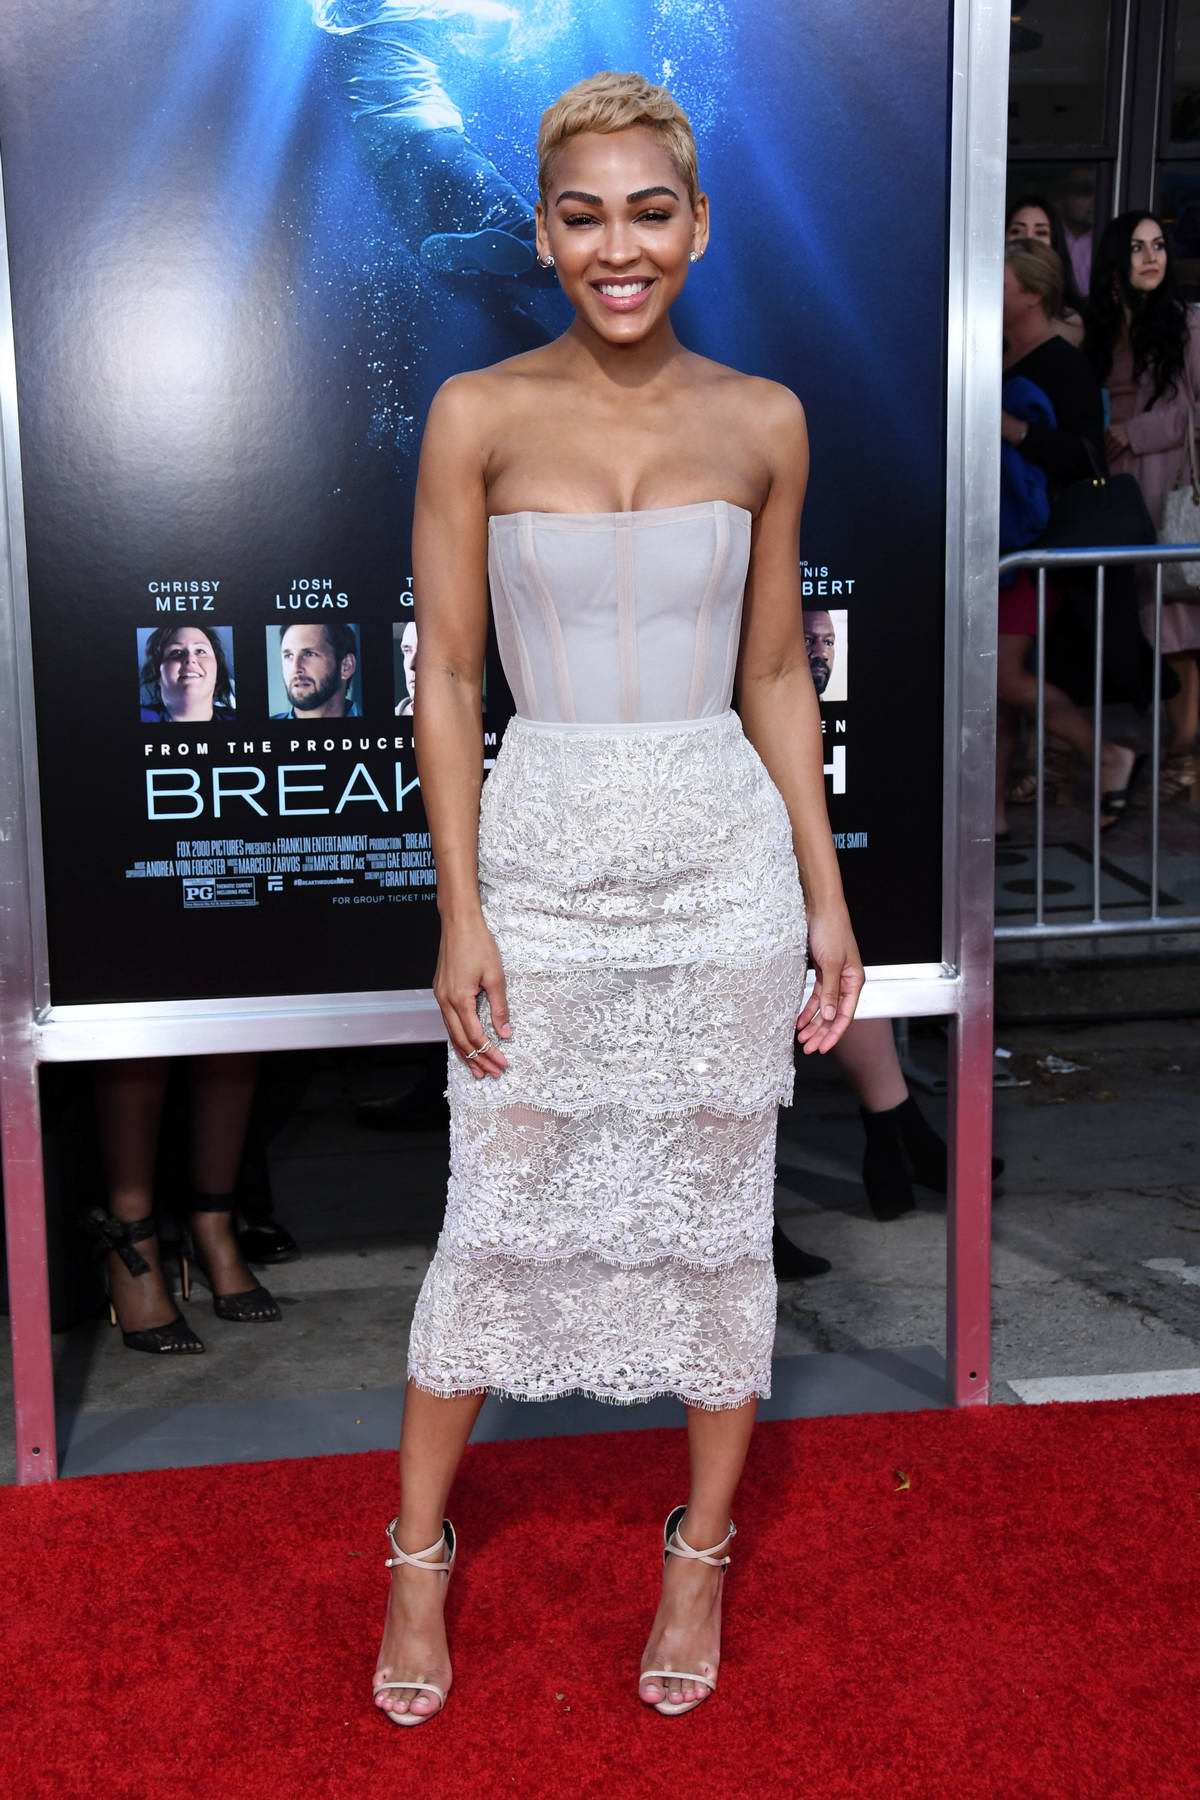 Meagan Good attends the premiere of 'Breakthrough' at Westwood Regency Theater in Los Angeles